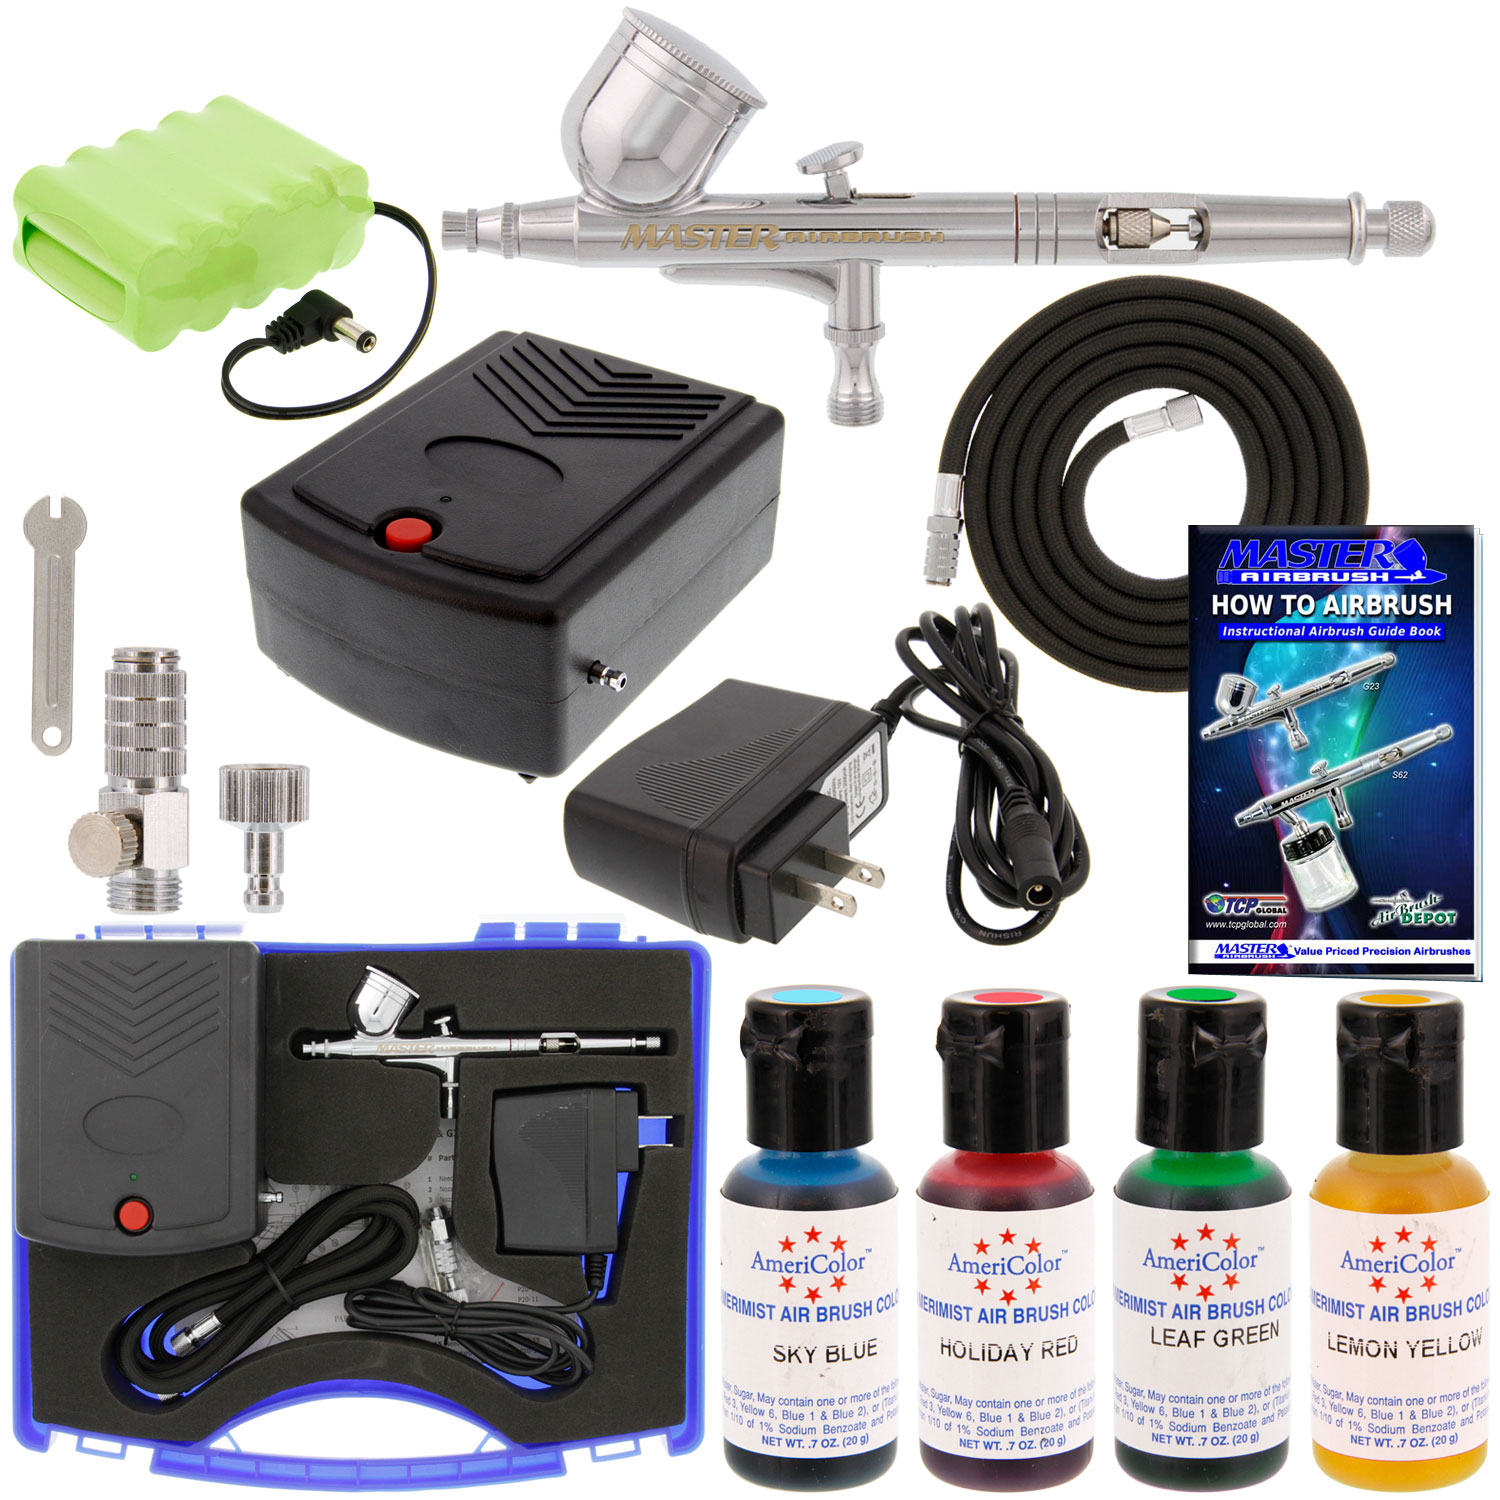 Complete Master Airbrush Cake Decorating Airbrush System : CAKE DECORATING AIRBRUSH & AIR COMPRESSOR KIT Rechargeable ...